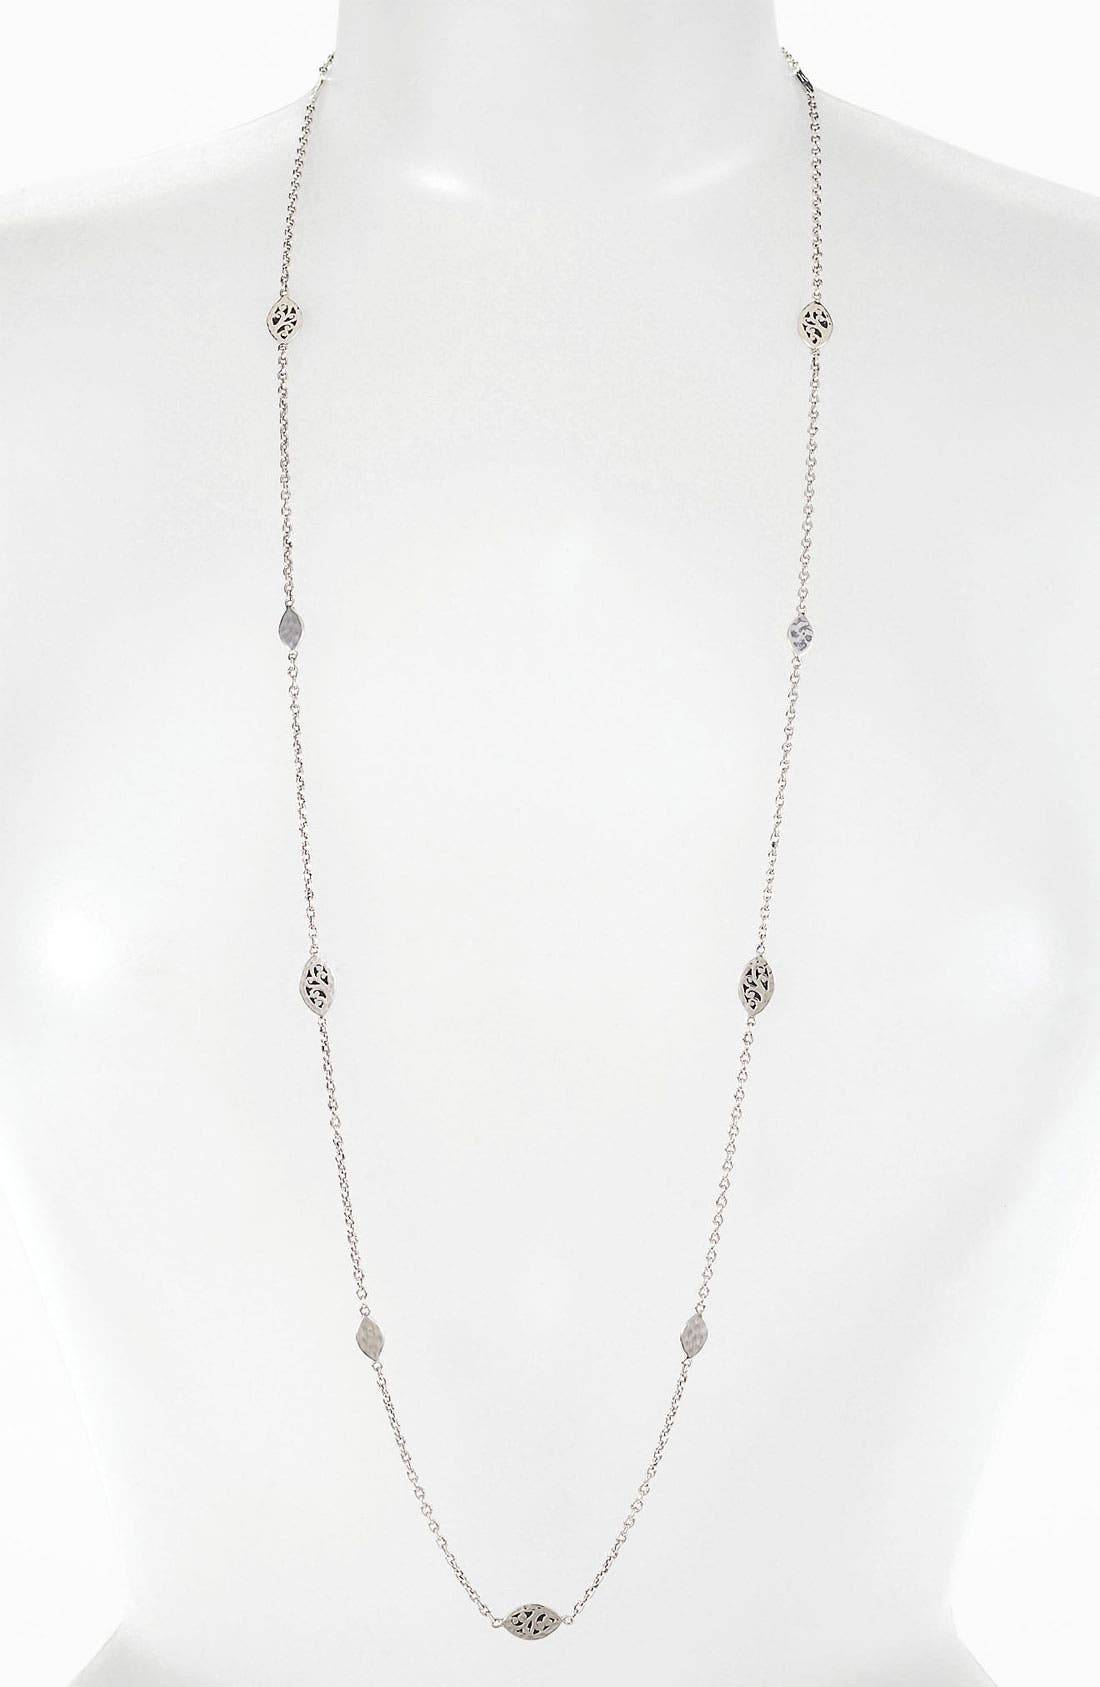 Main Image - Lois Hill 'Marquise' Long Station Necklace